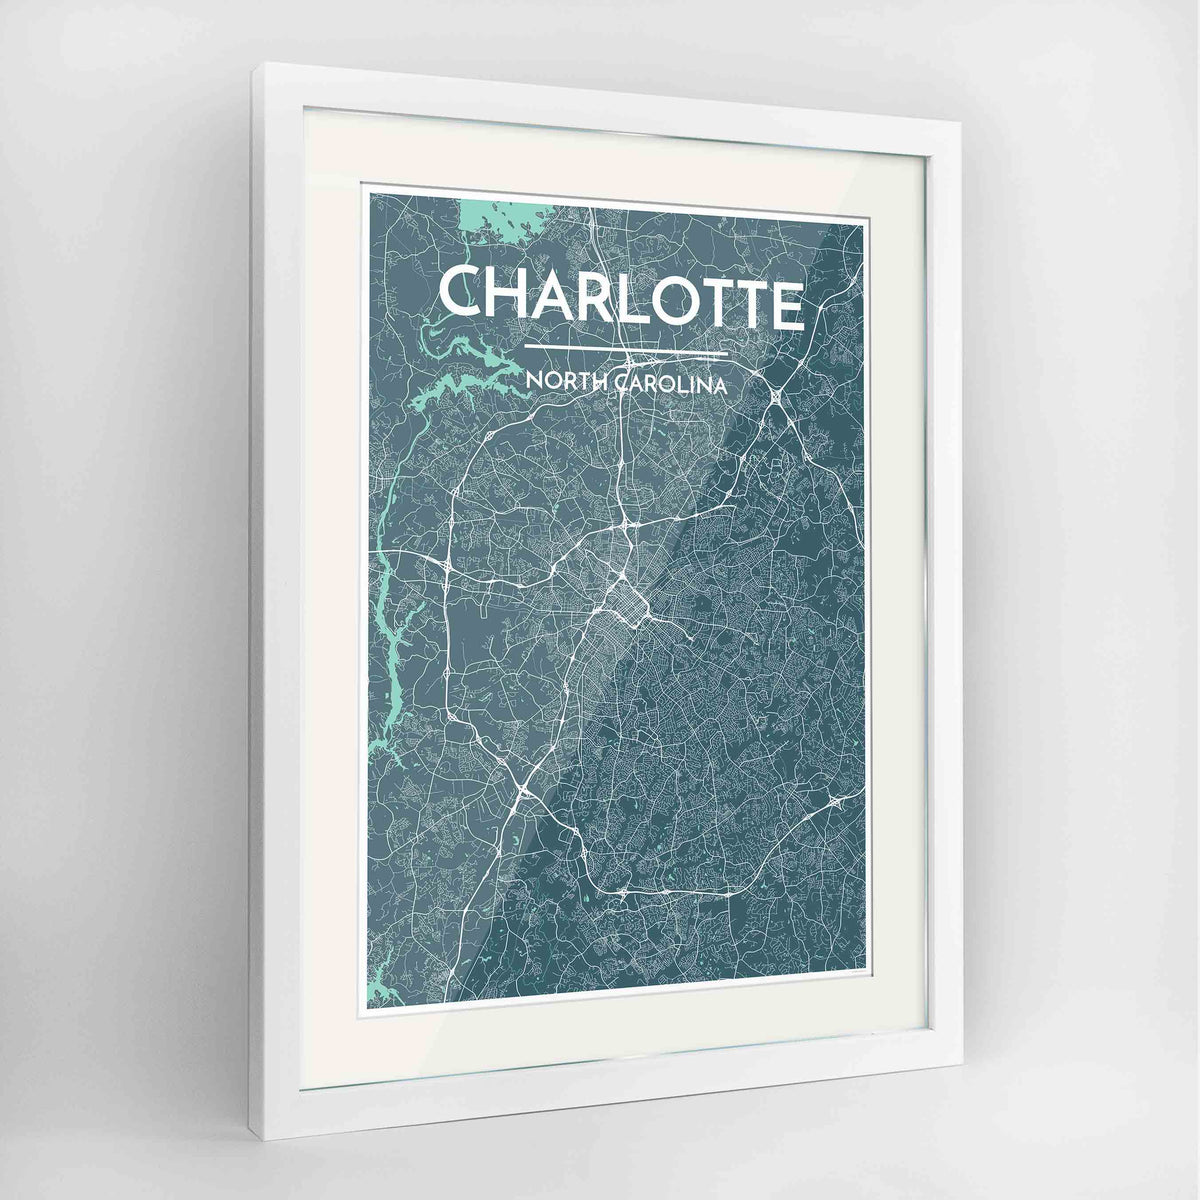 "Framed Charlotte Map Art Print 24x36"" Contemporary White frame Point Two Design Group"